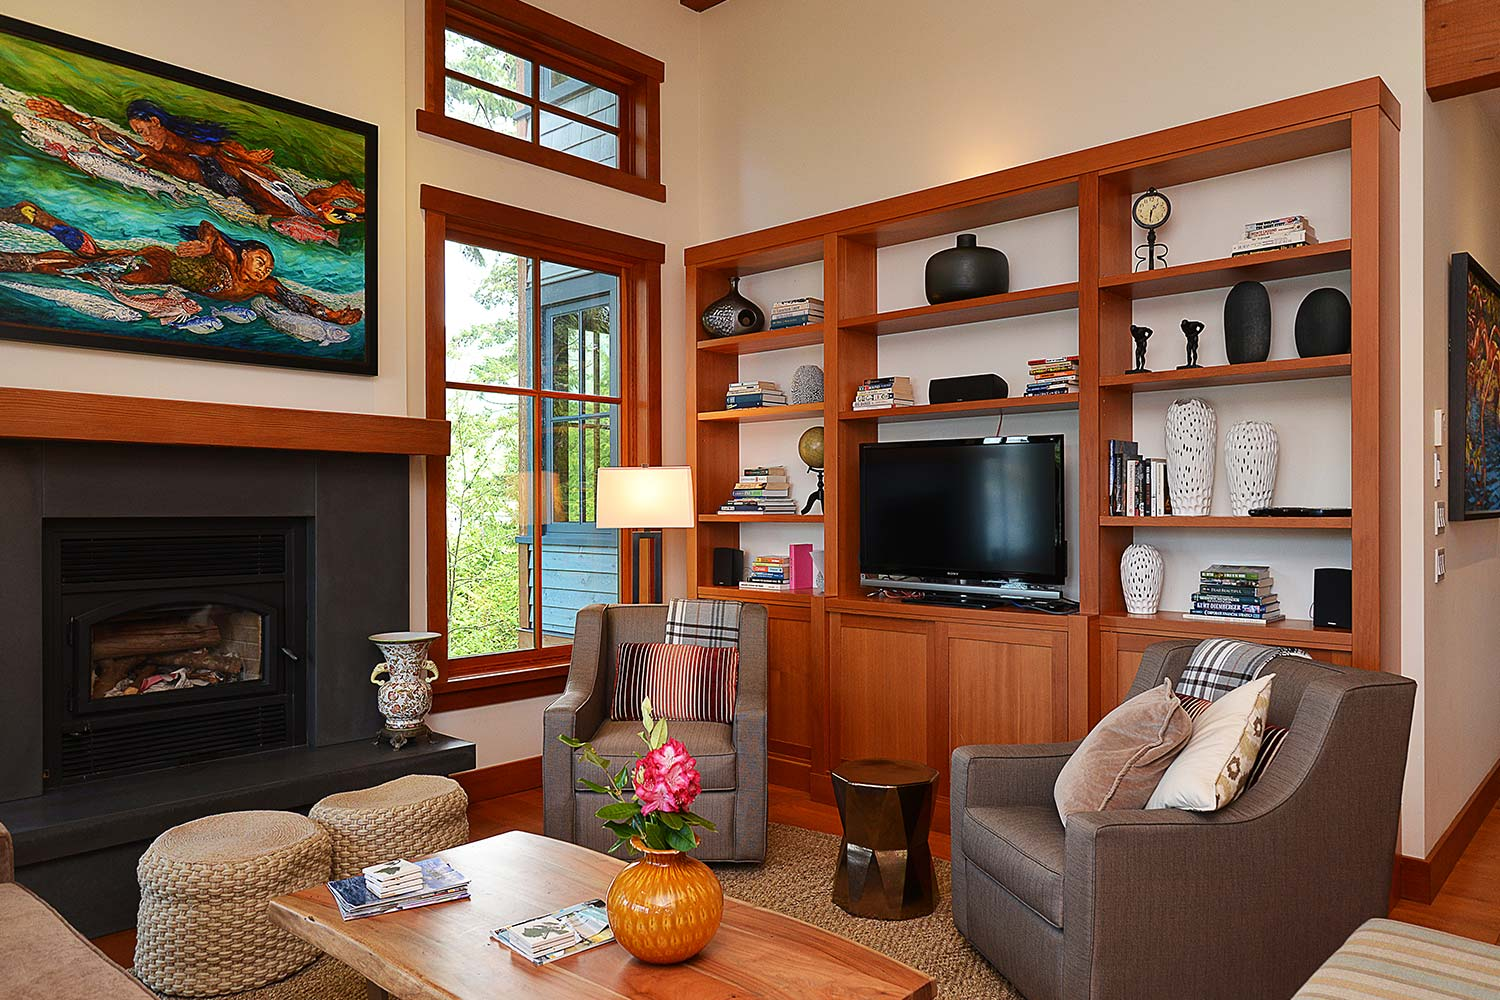 The cozy living area of House 65, a luxury furnished homes for rent with comfortable chairs, artwork, a fire, and a TV.